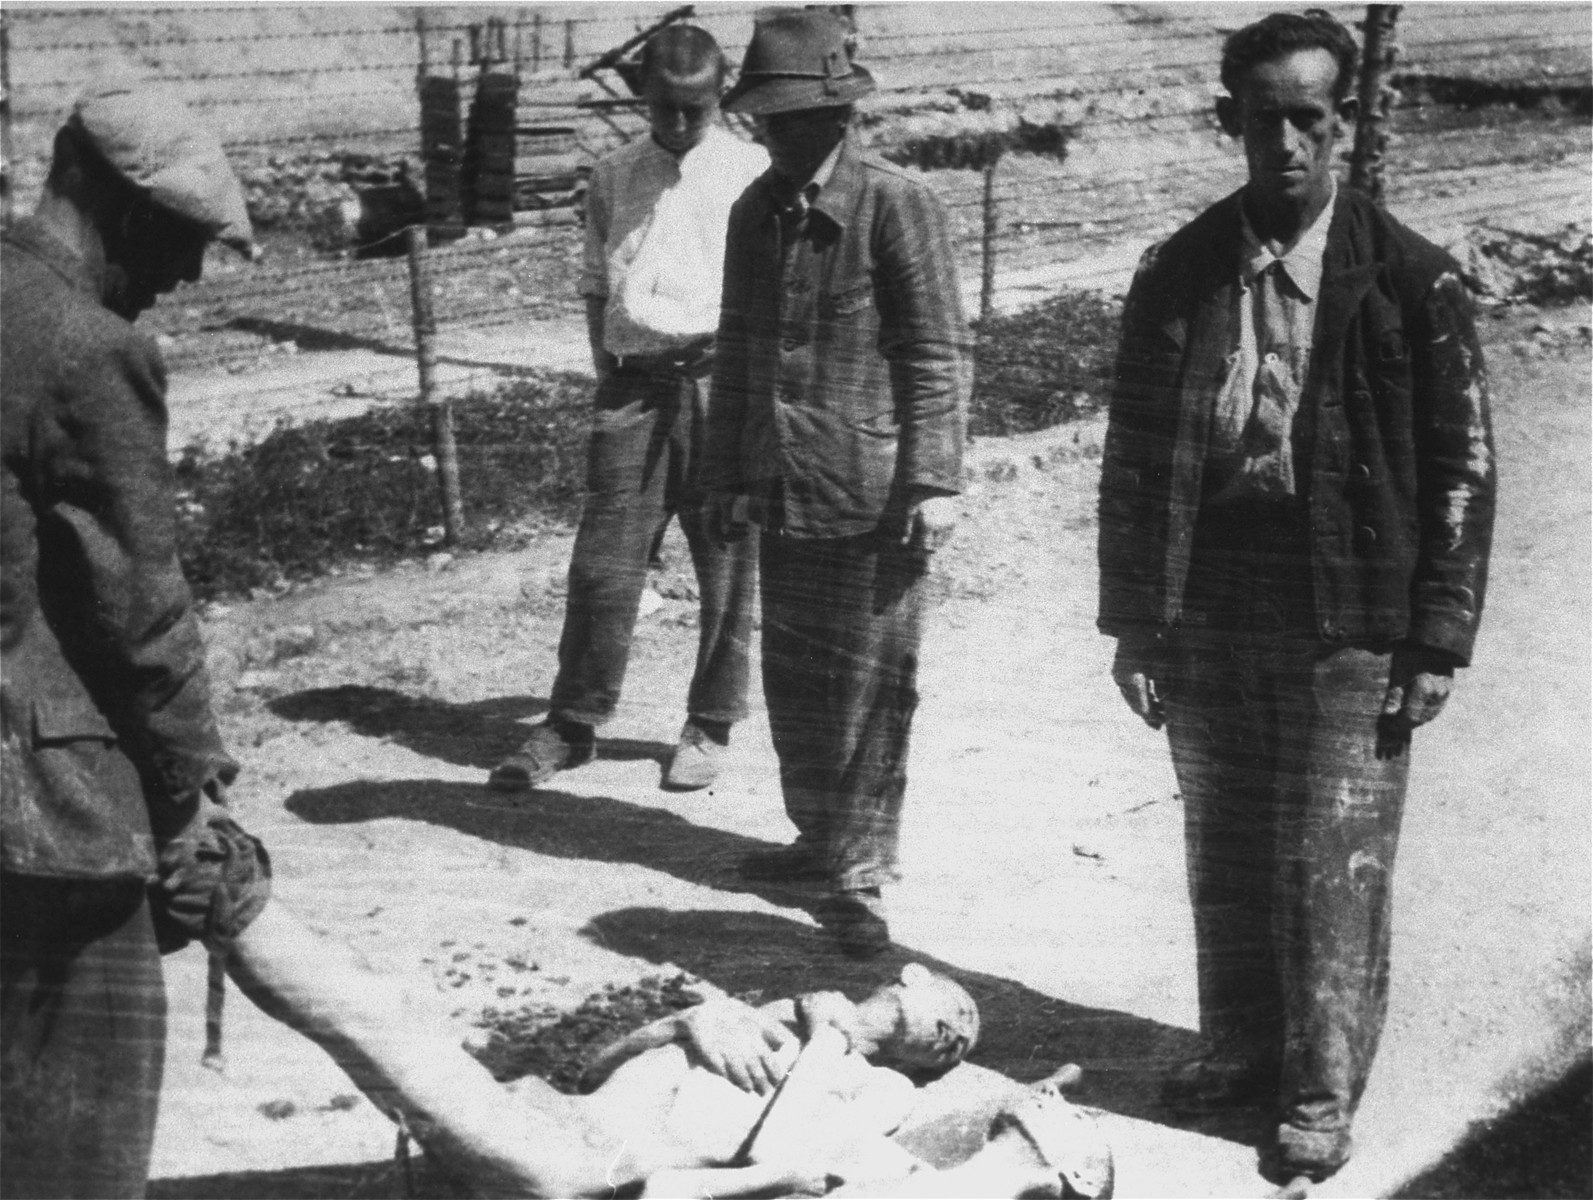 Survivors in Ebensee collect the bodies of fellow prisoners for burial.